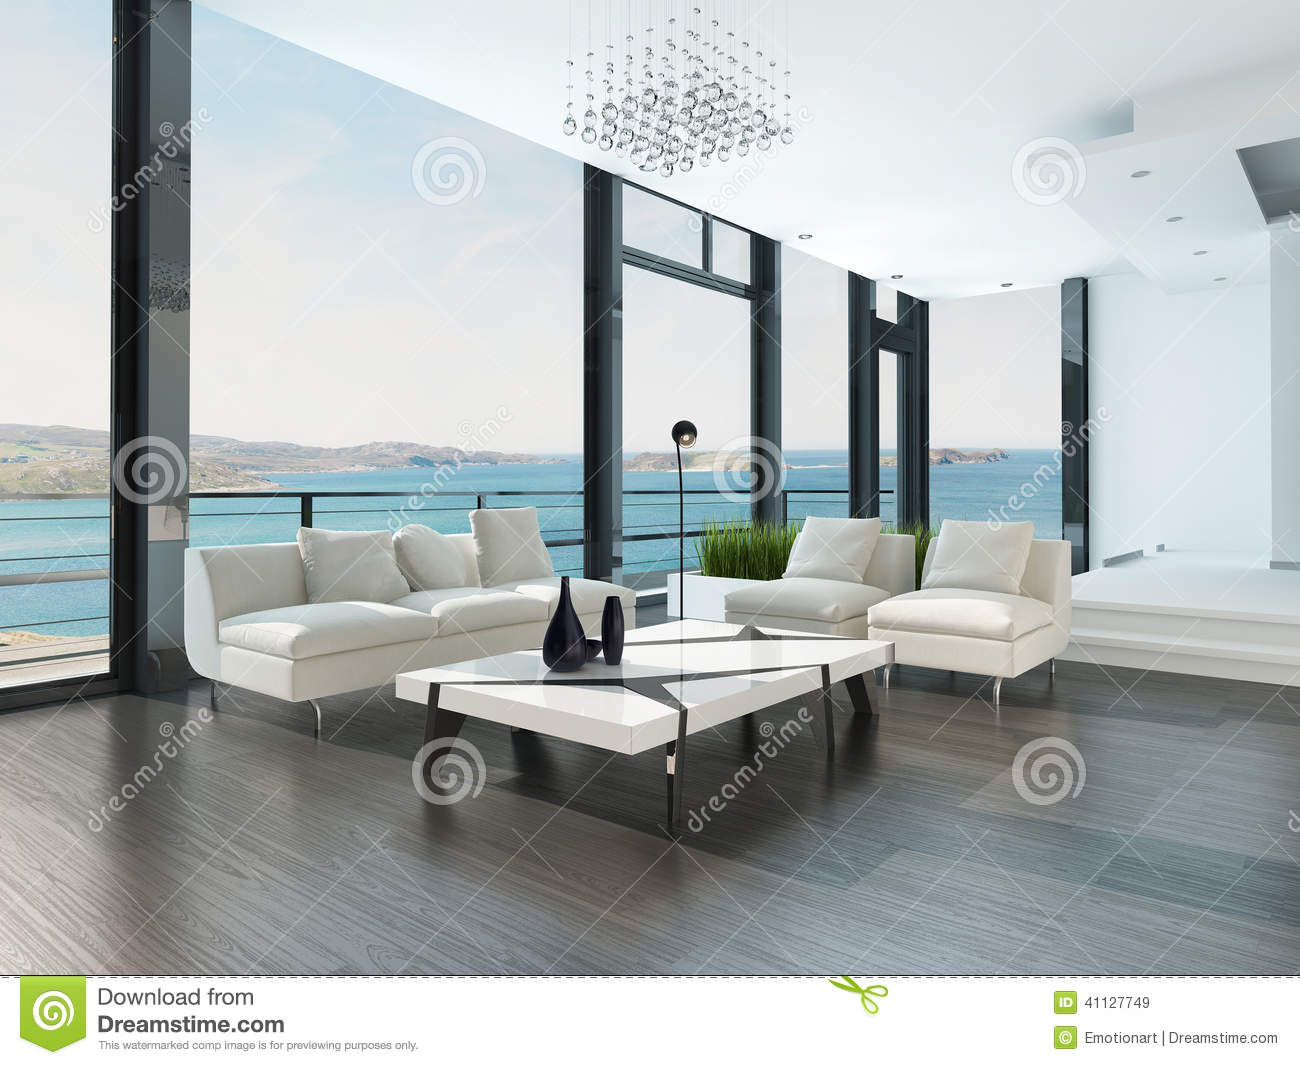 Luxury Living Room Interior With White Couch And Seascape